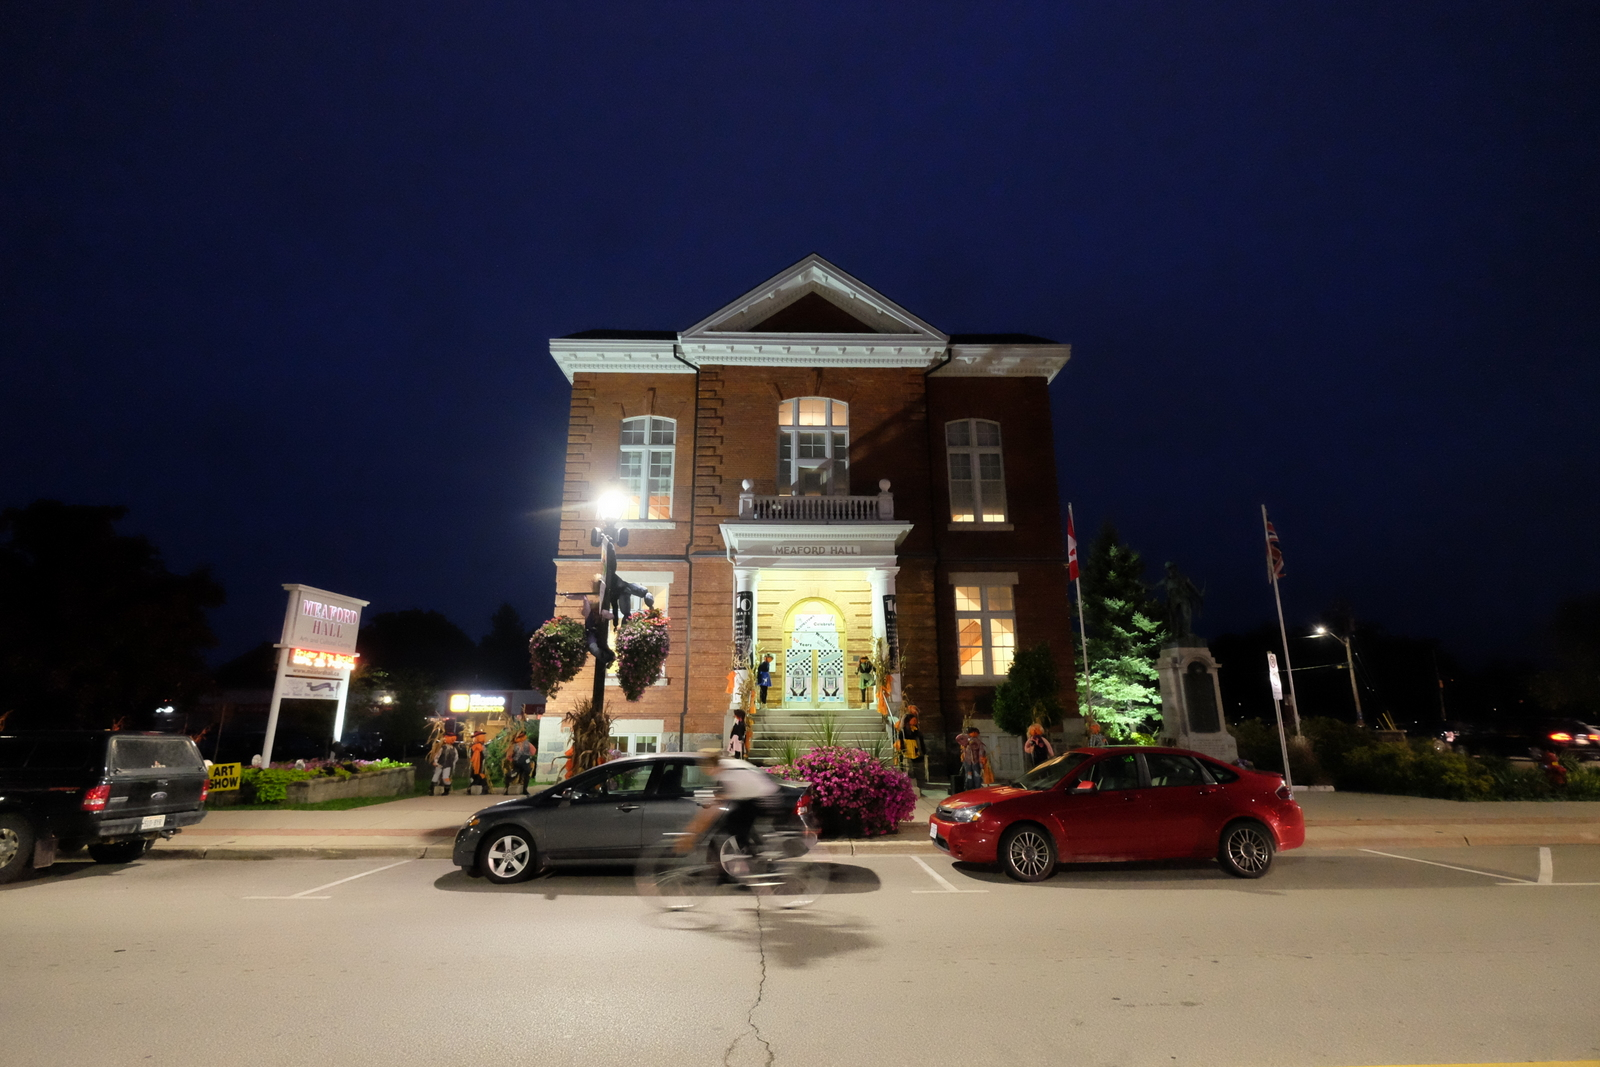 Meaford is an increasingly hip town in Grey County, Ontario. - JIM BYERS PHOTO